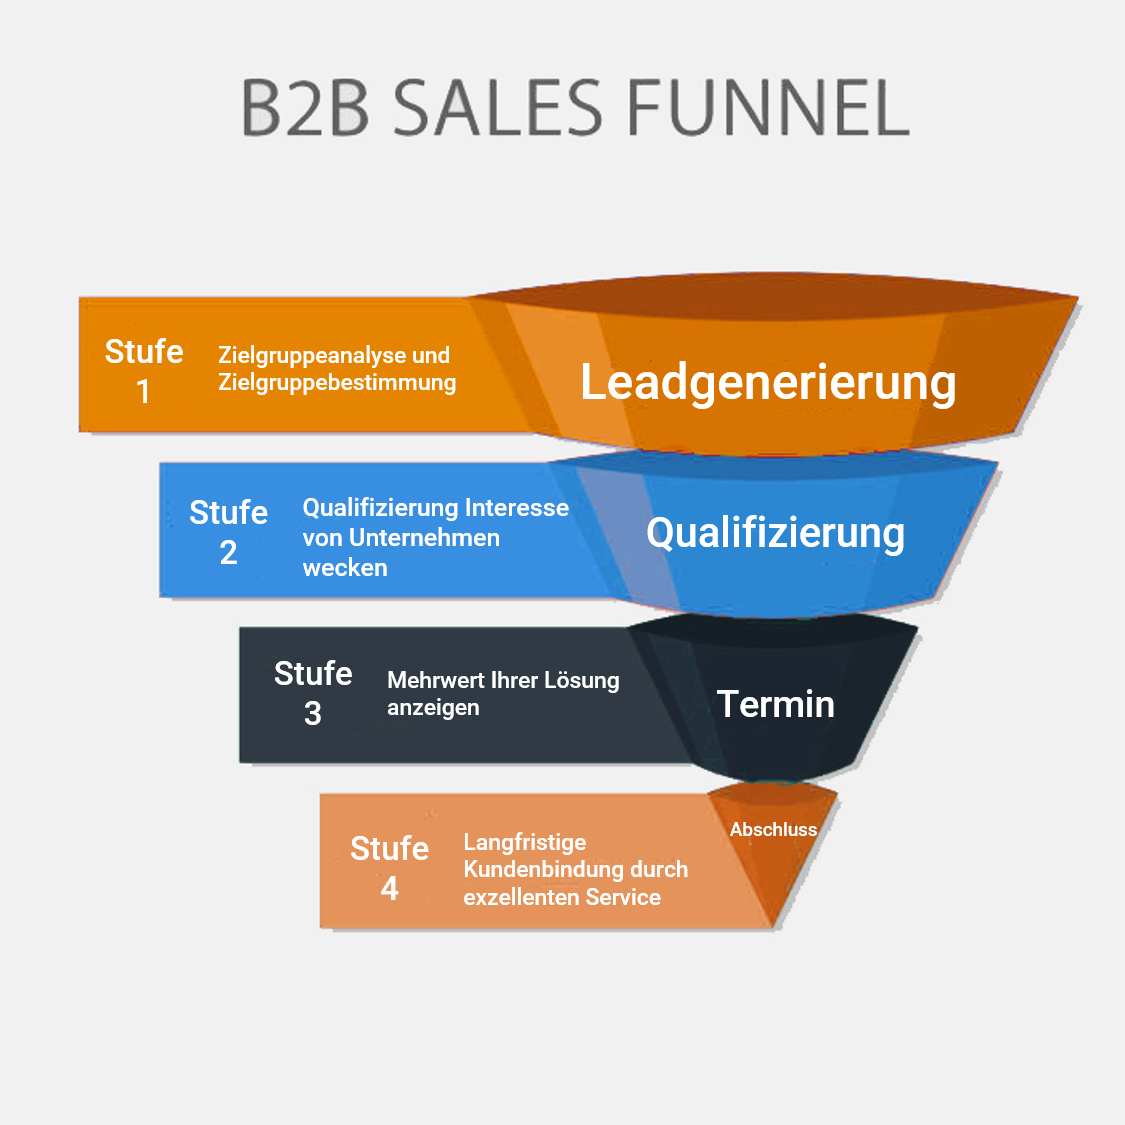 B2B Sales Funnel